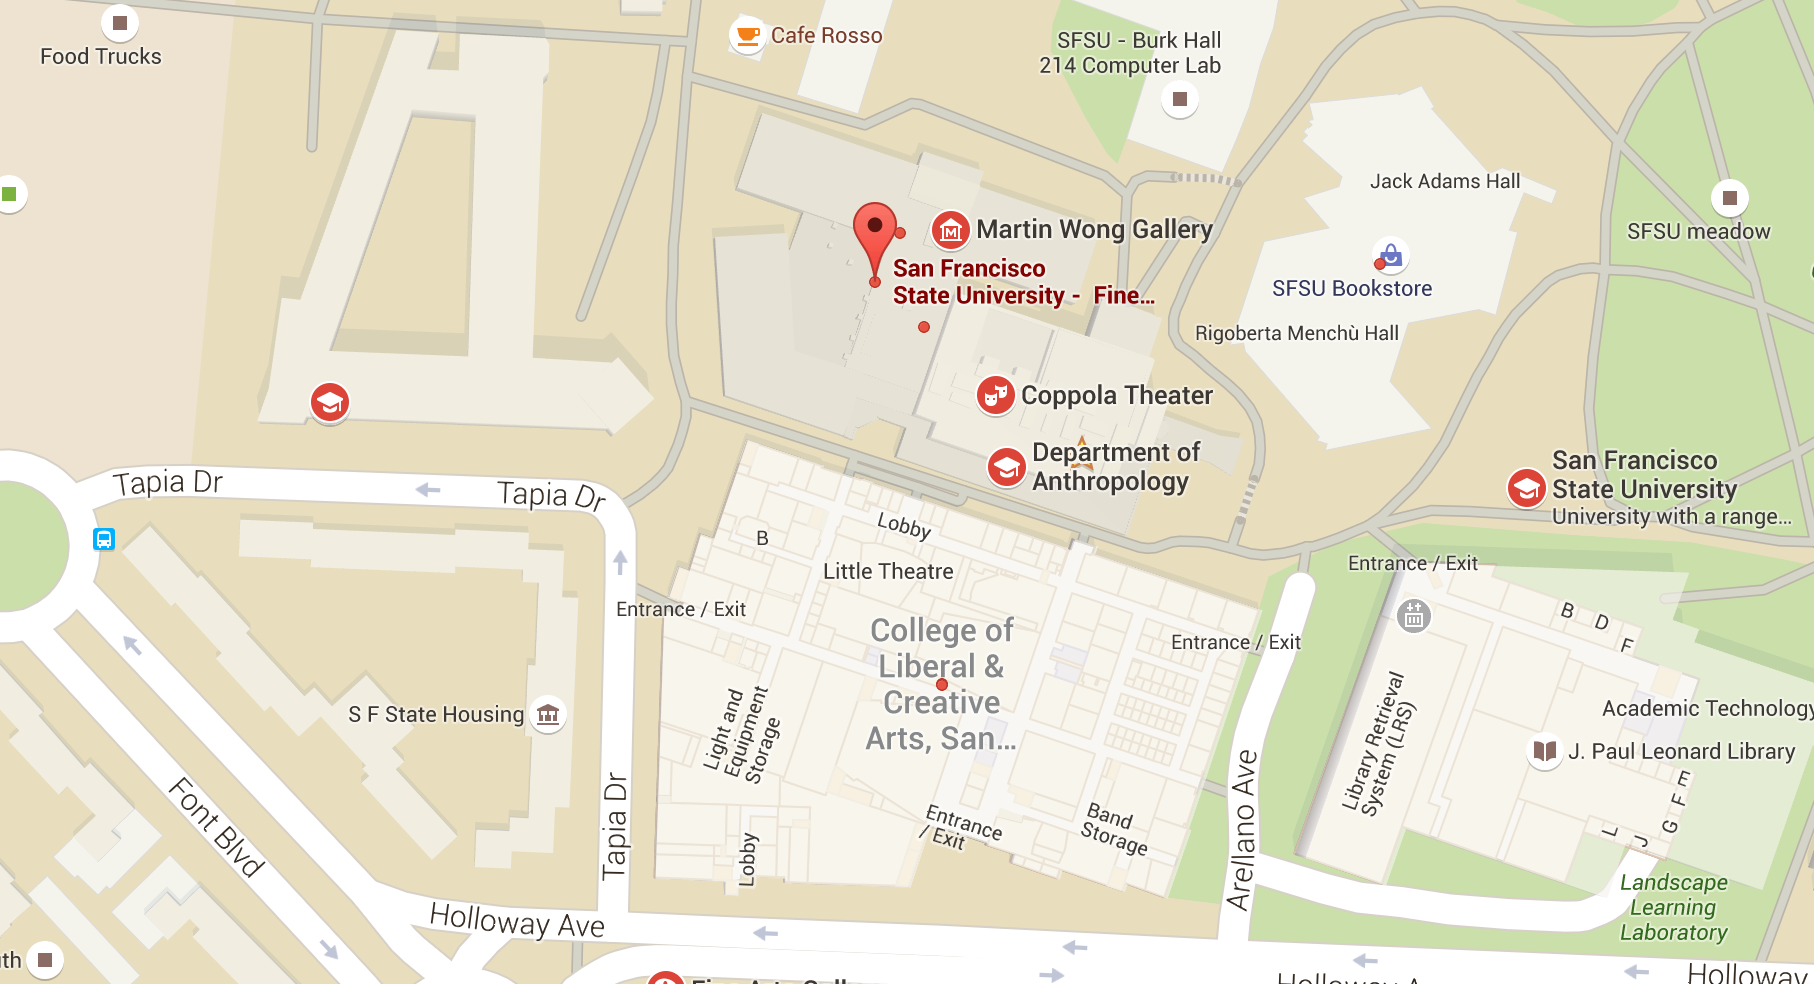 Map of College of Liberal & Creative Arts buildings